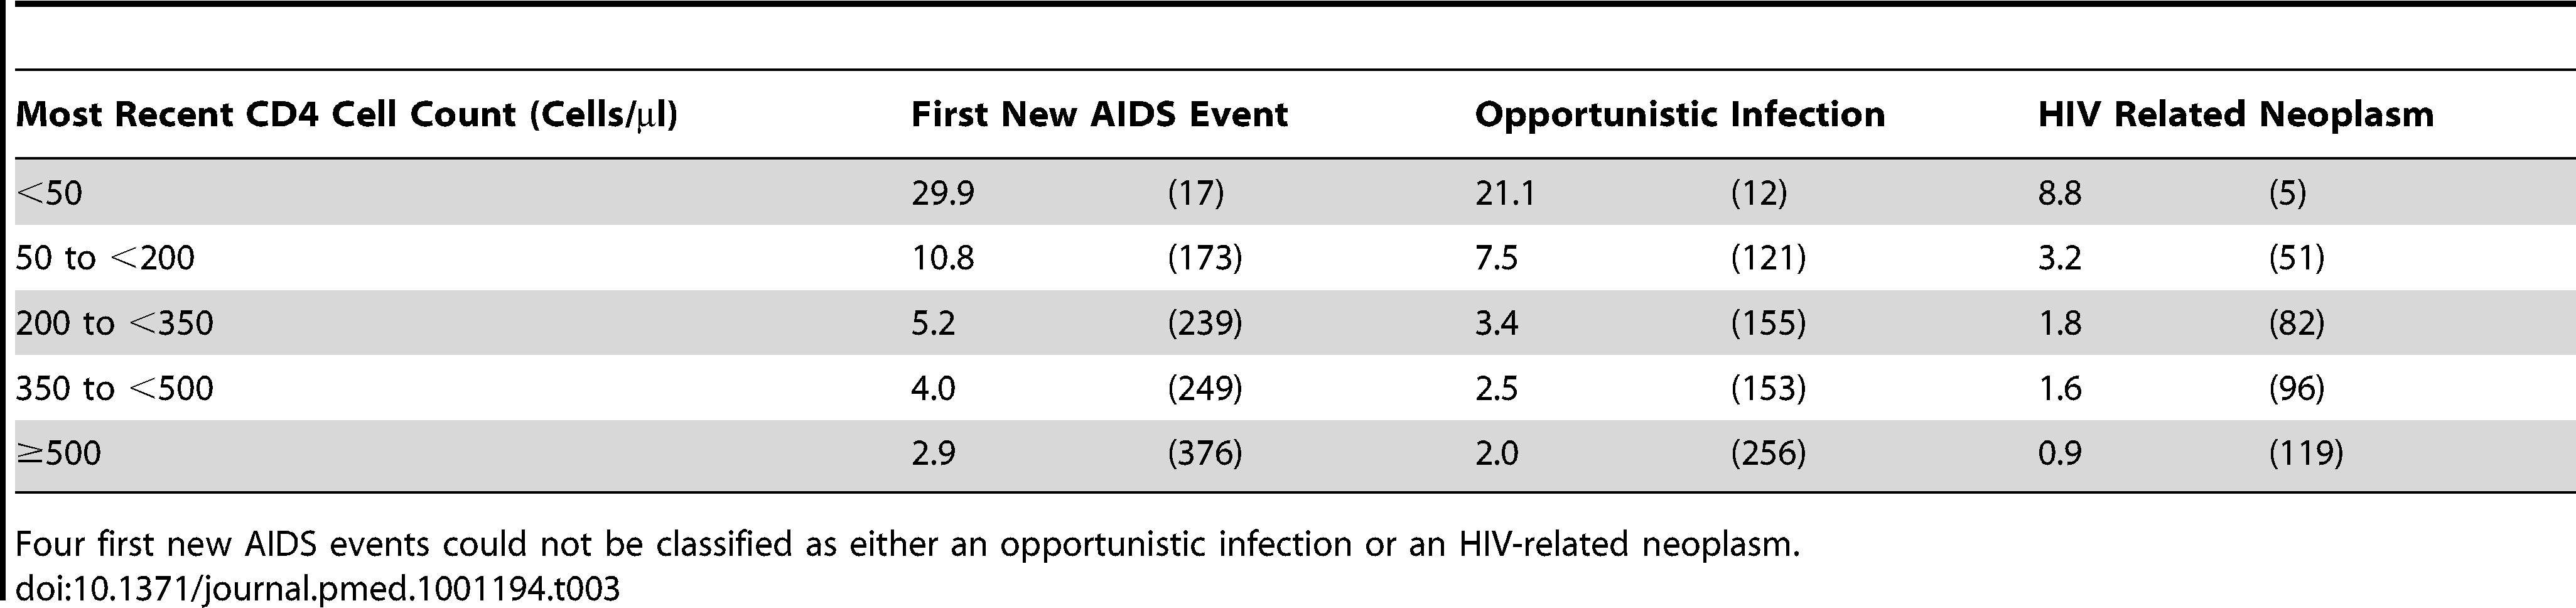 Event rates in CD4 strata among the 75,336 patients with at least one suppression episode while on cART: event rates per 1,000 y of suppressed viral load (number of events) for a first new AIDS event, with each event then classified as either an opportunistic infection or a HIV related neoplasm.